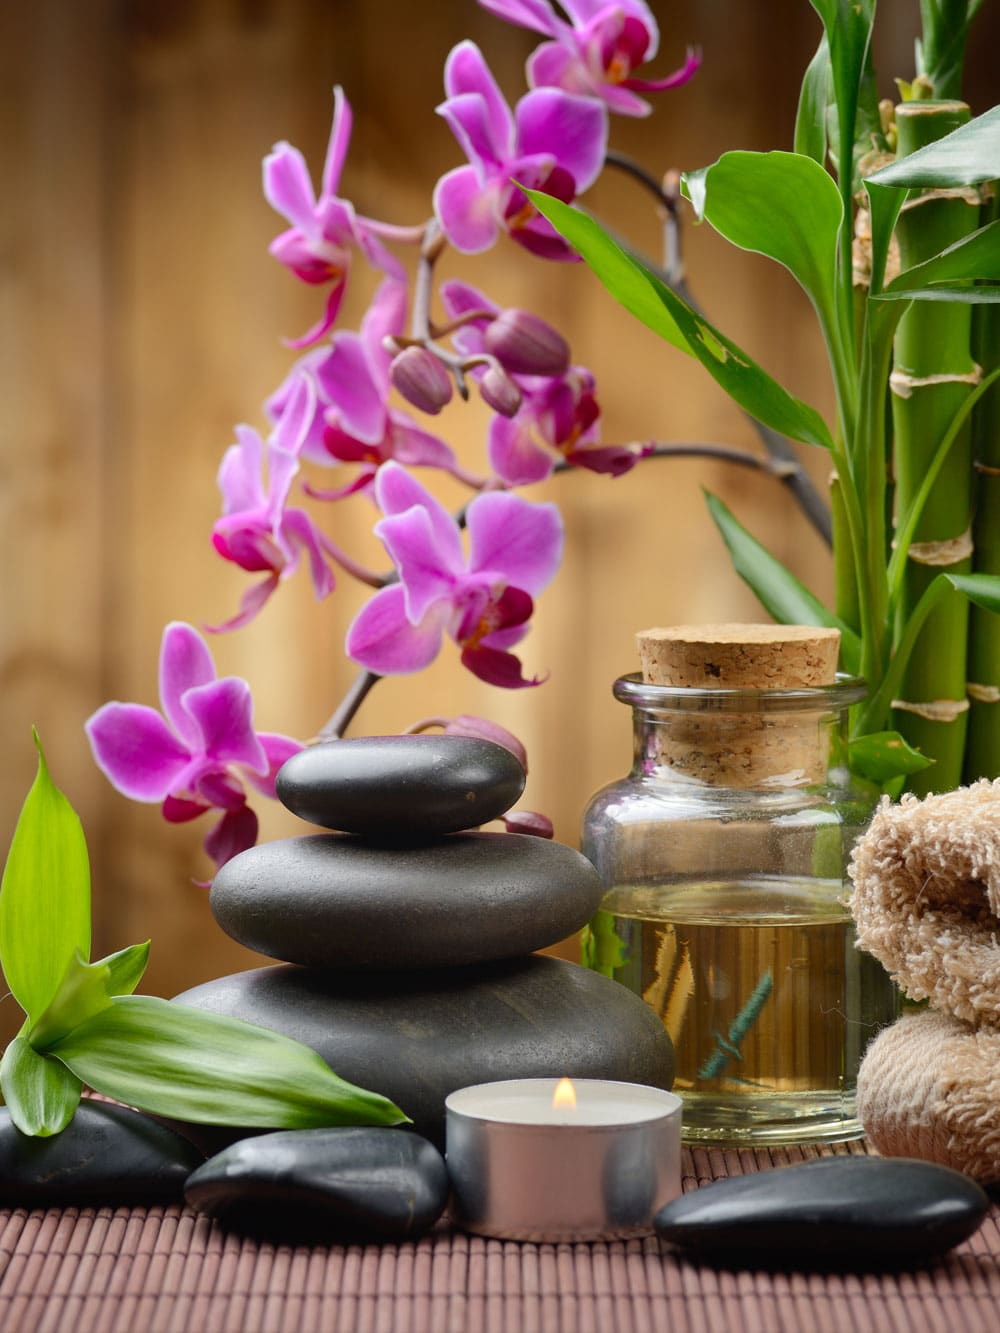 Welcome to The Day Spa at Goldsboro Spine Center